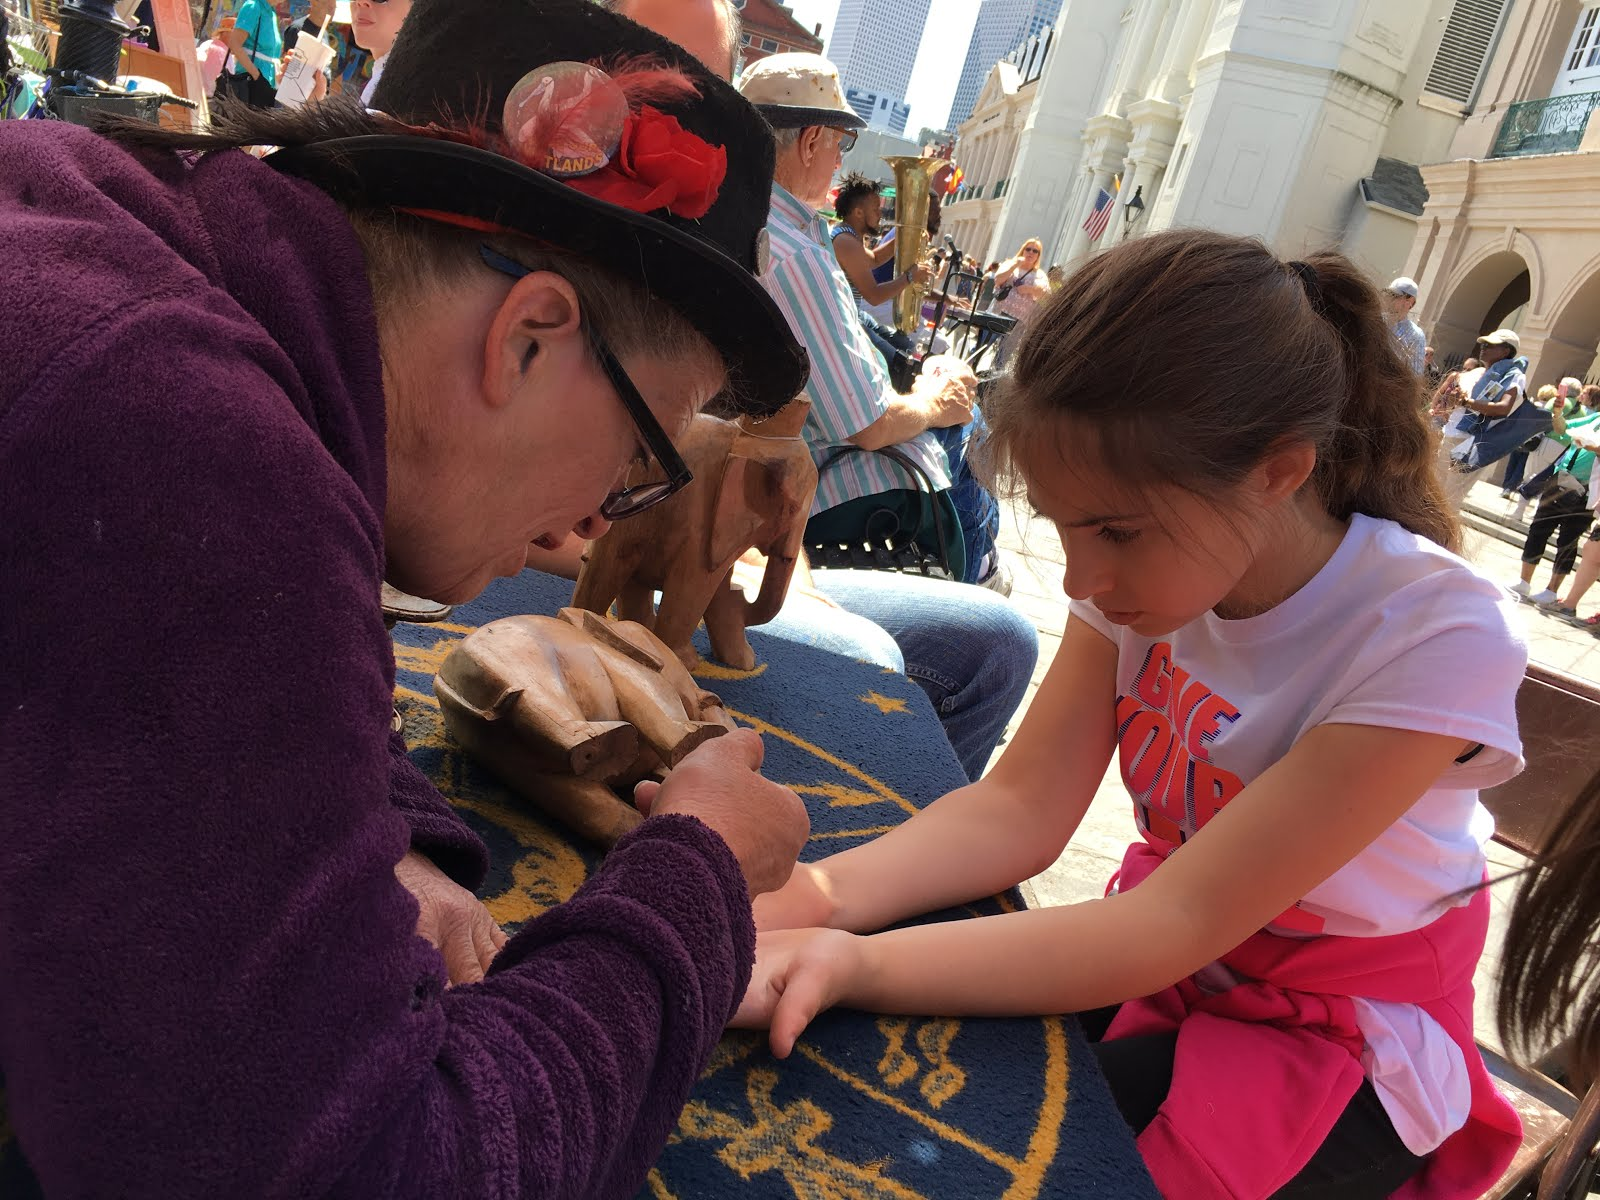 Haven and Joni: We love NOLA! Fortune telling